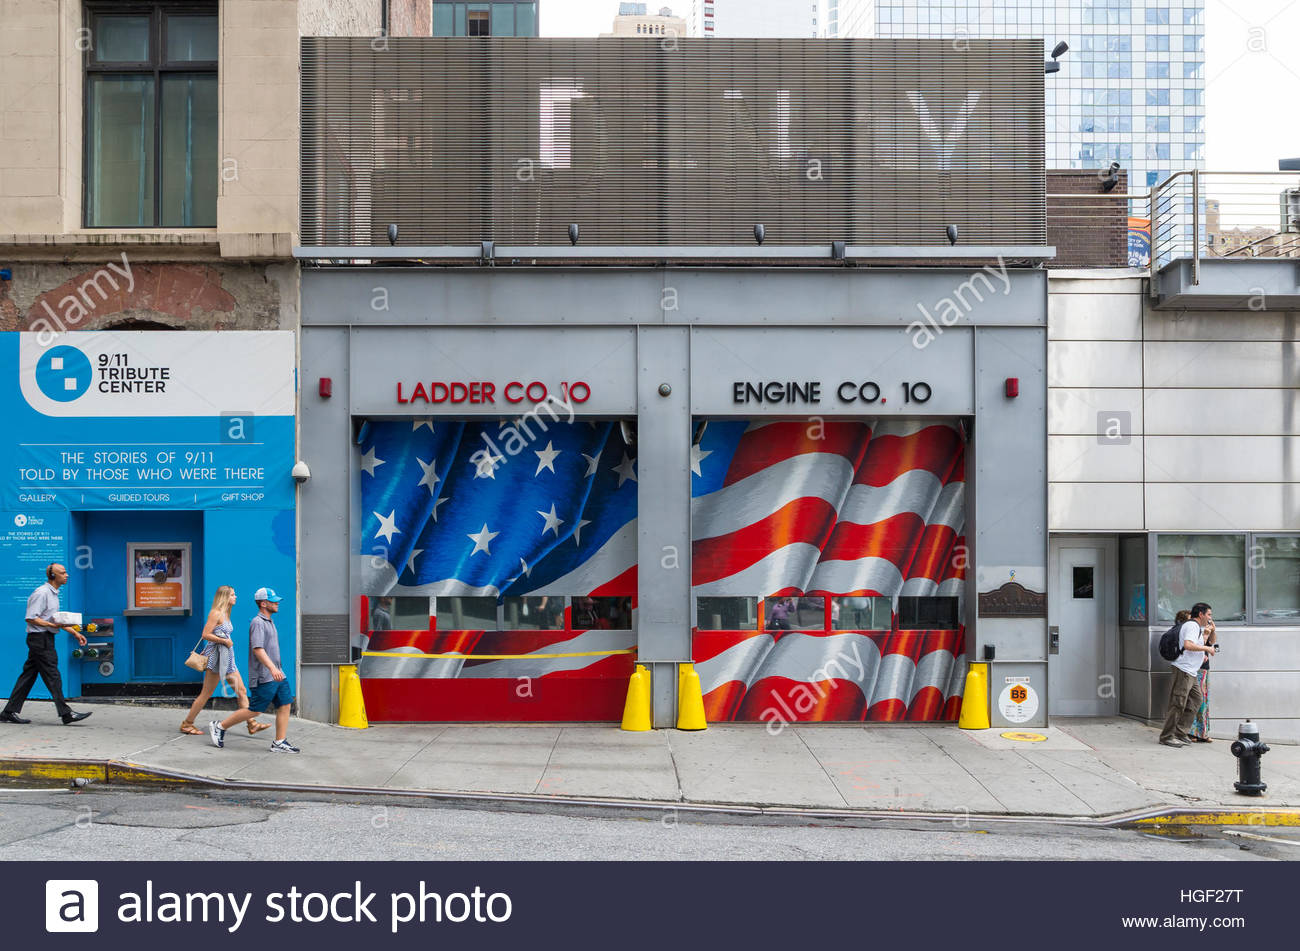 The Daily Show with Jon Stewart New York City, Firehouse New York Stock Photos & Firehouse New York Stock Images ...